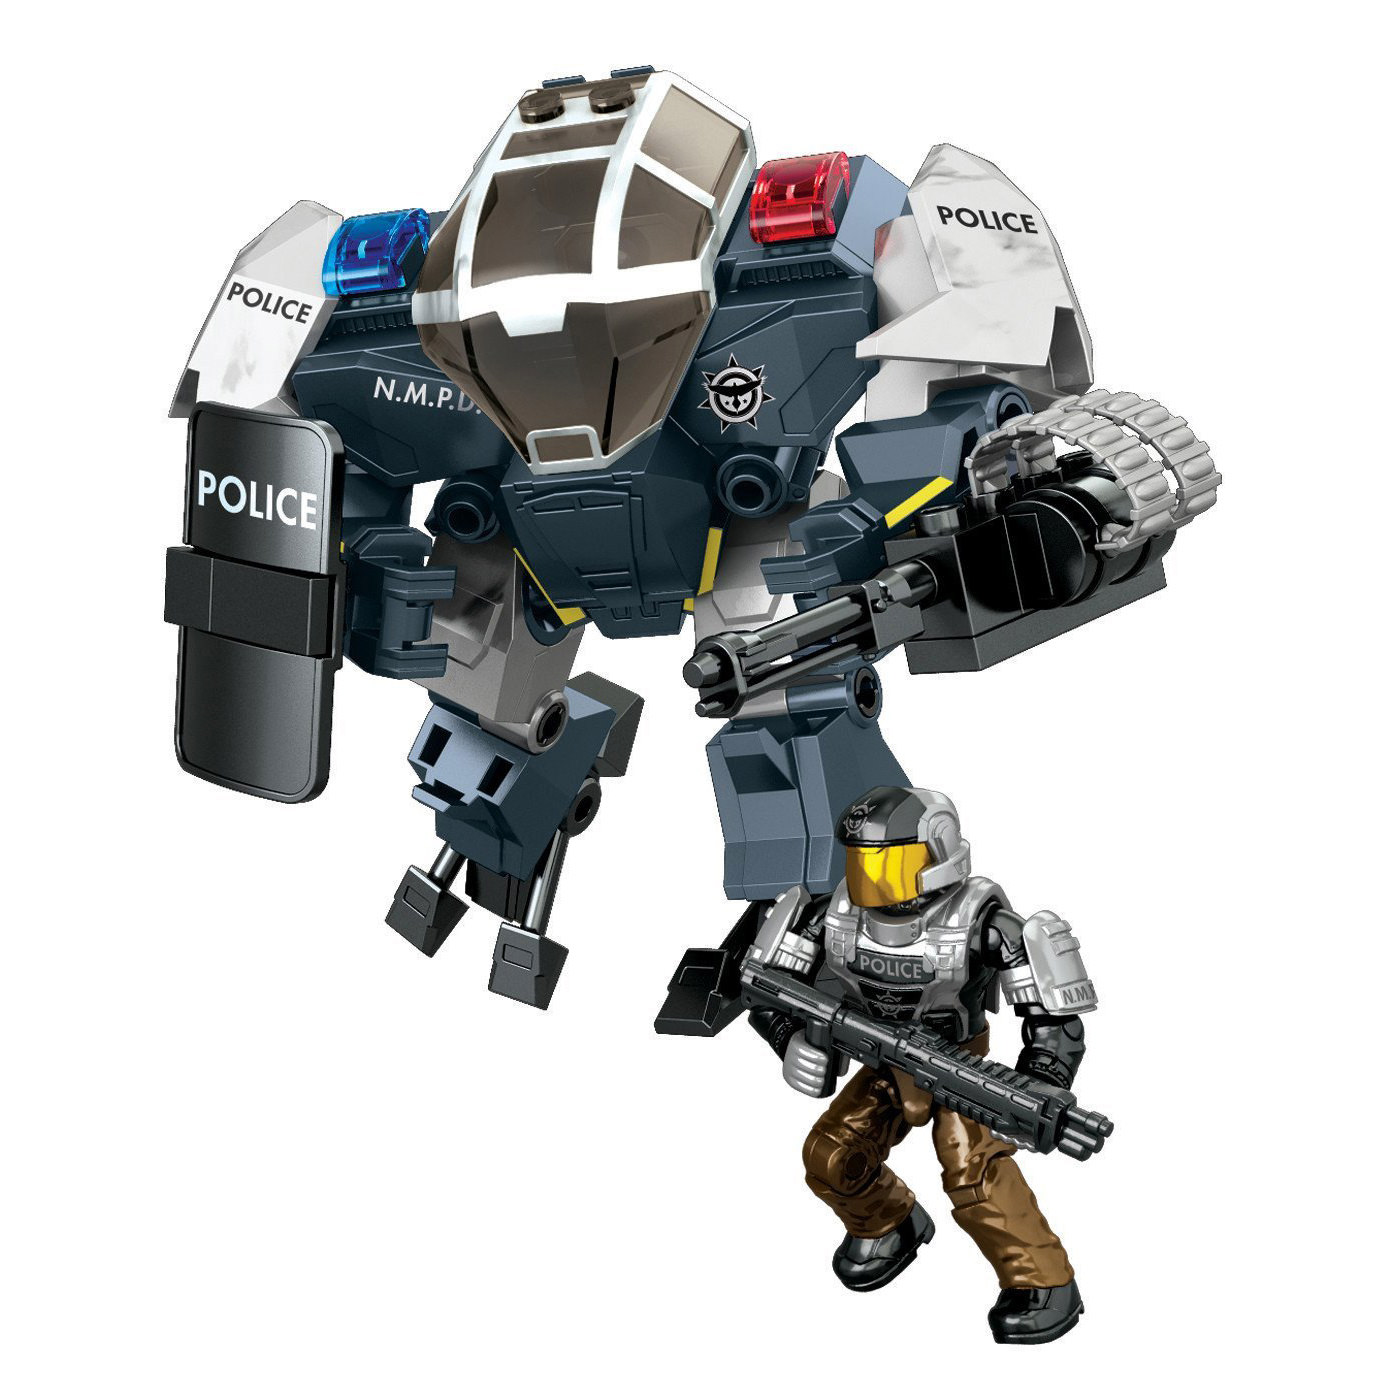 Mega Bloks Halo Sector 12 Police Cyclops Set At Hobby